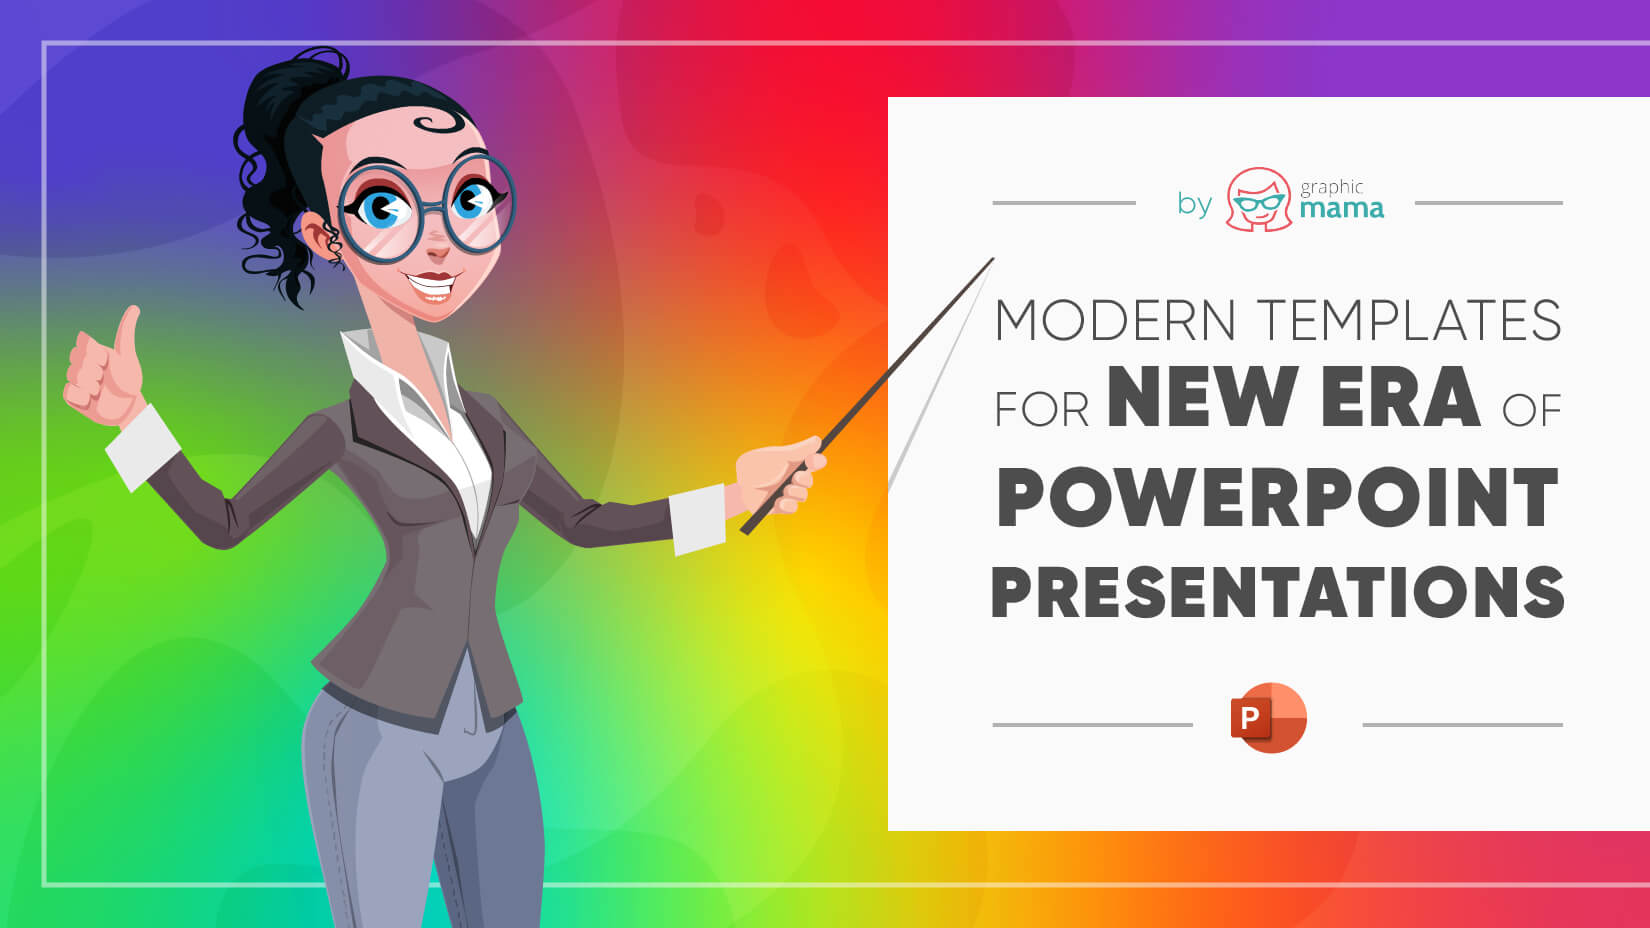 Graphic Mama's Modern Templates for New Era of PowerPoint Presentations